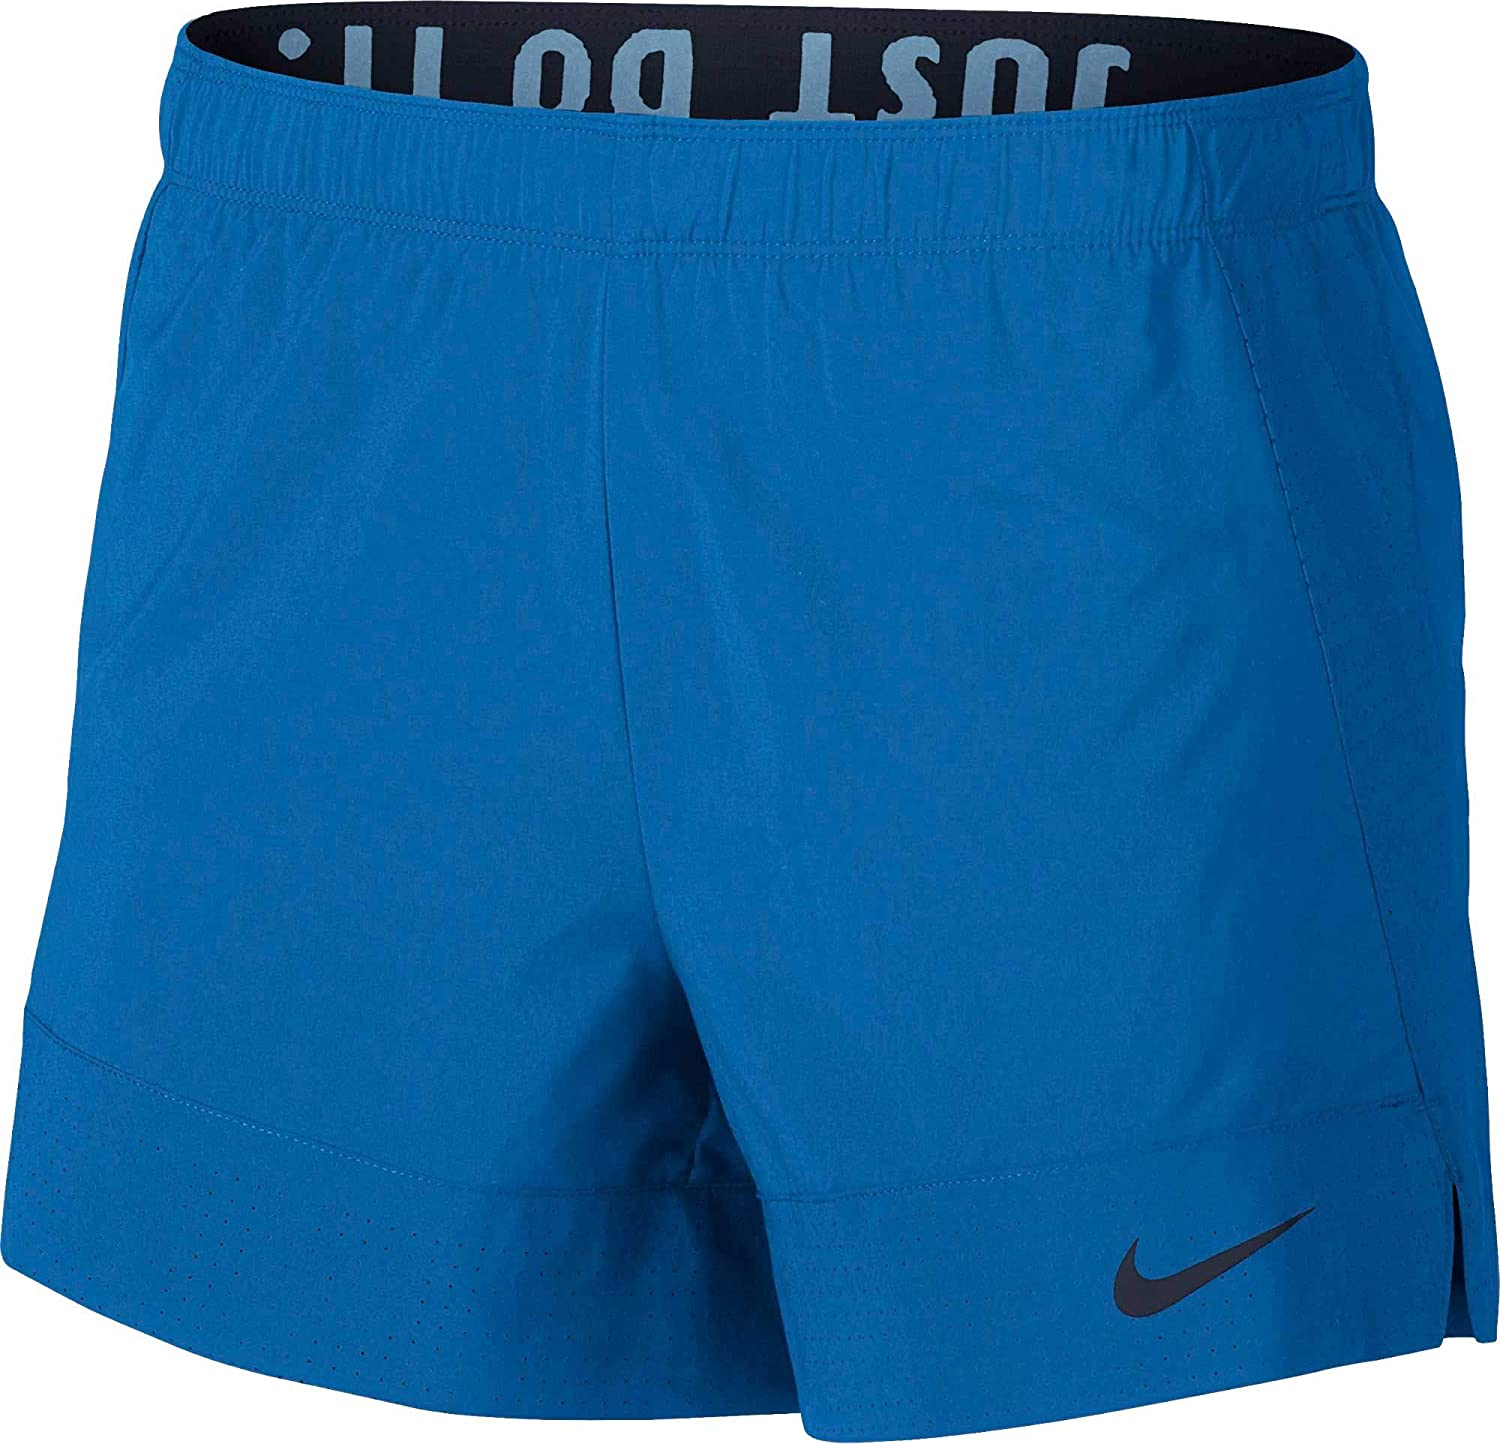 7fa0436cea Amazon.com: NIKE Women's Flex 2-in-1 Training Shorts (Signal Blue/Cobalt  Tint, X-Small): Sports & Outdoors